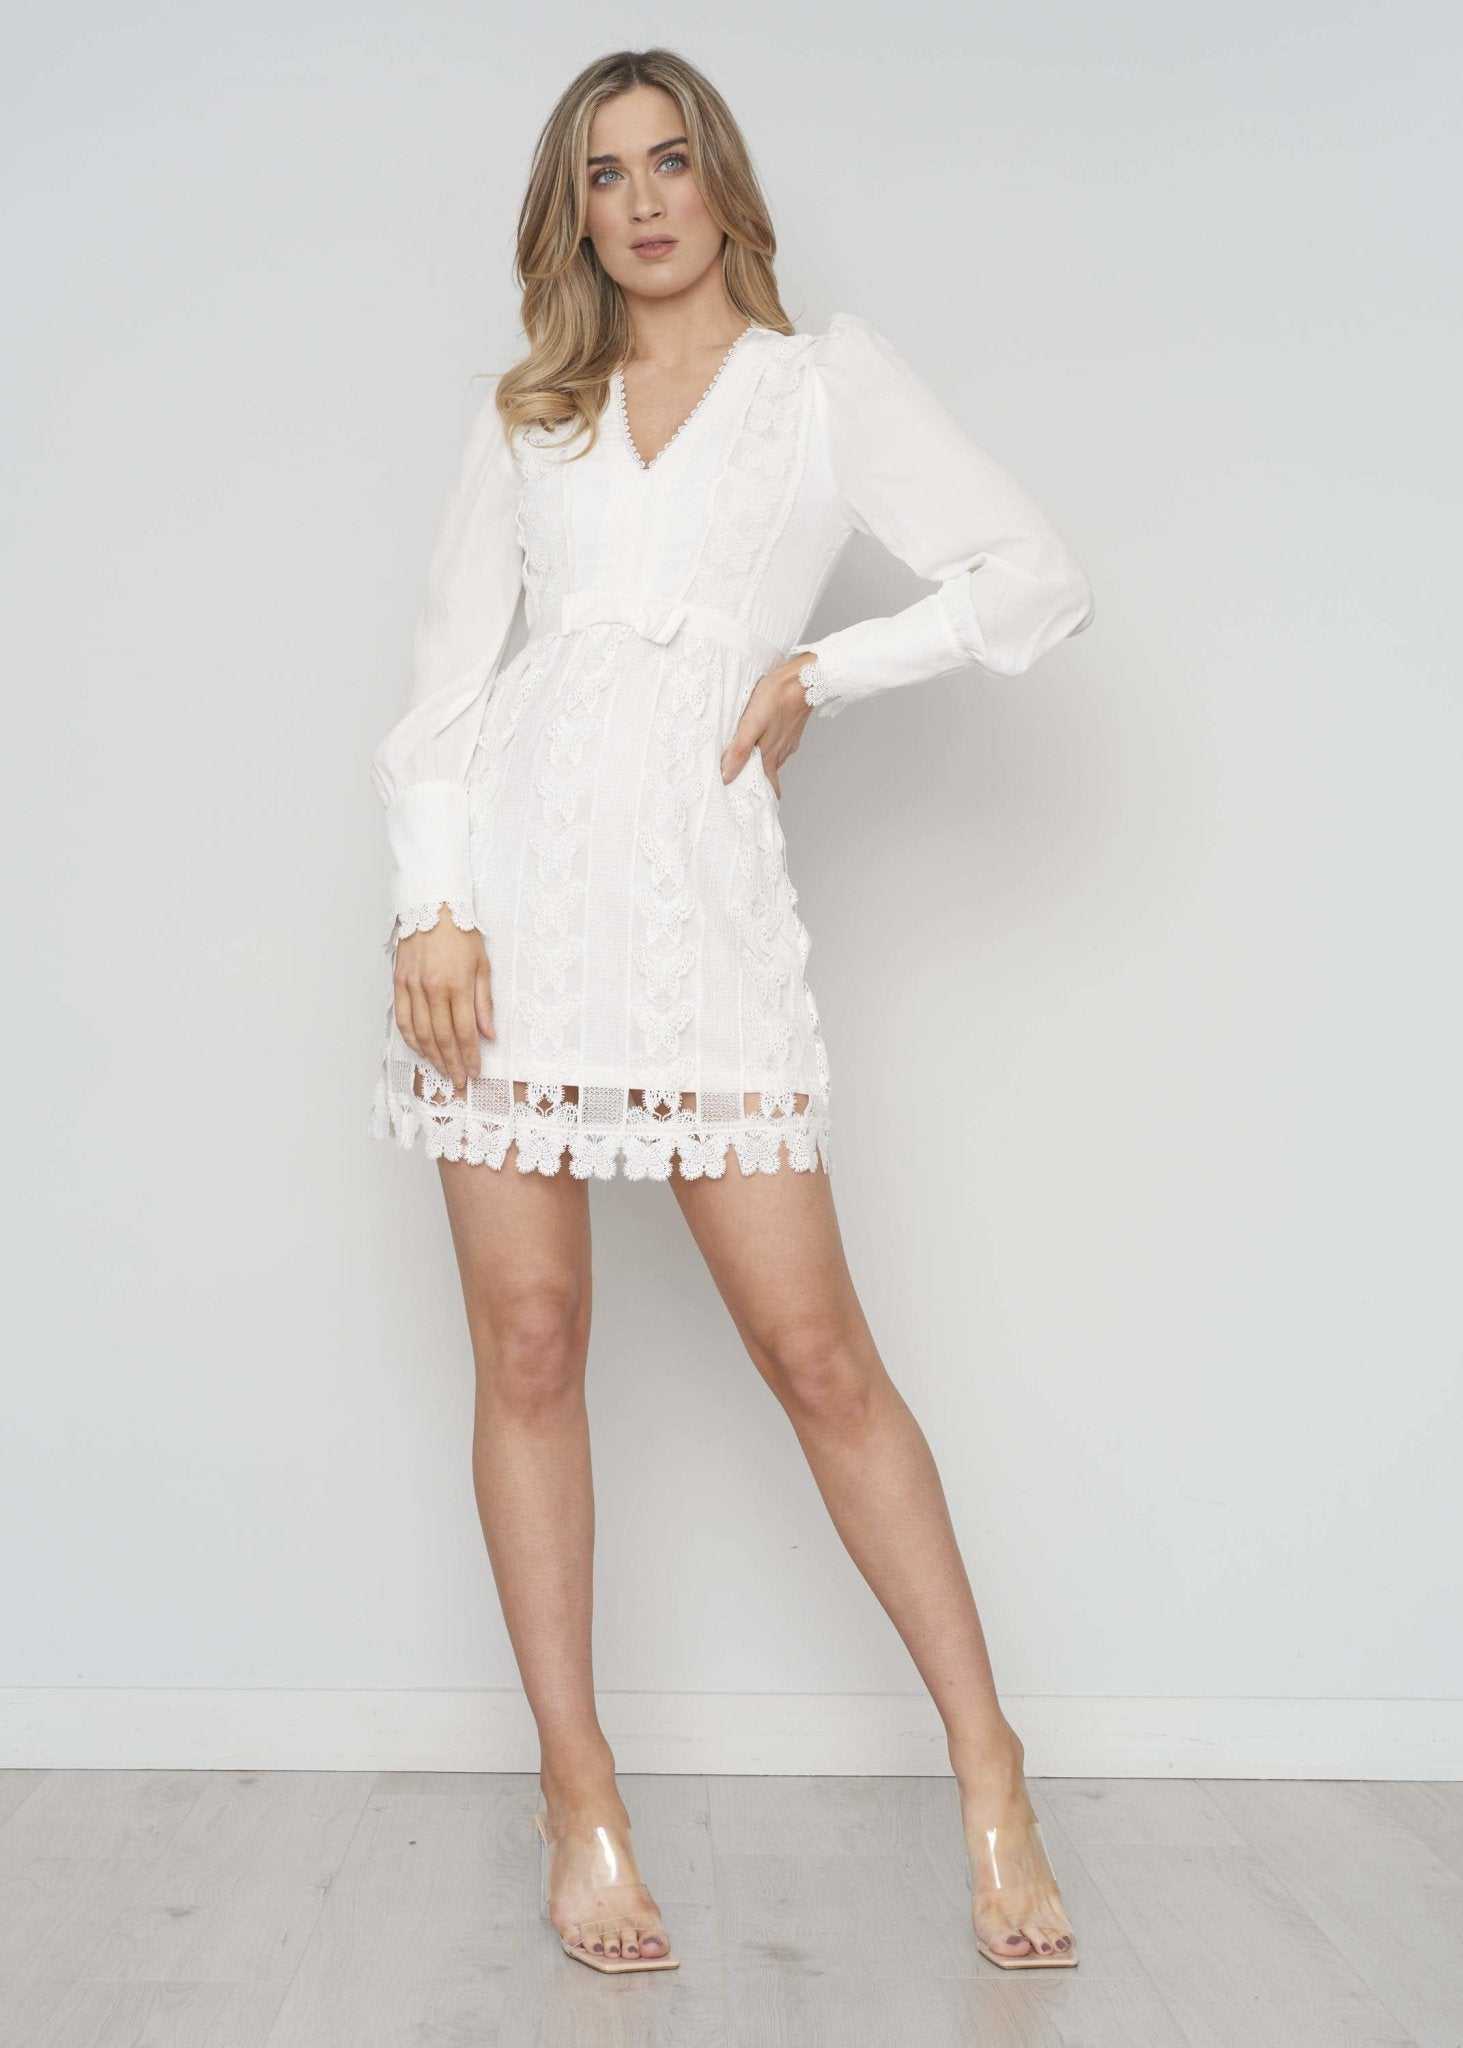 Casey Broderie Anglaise Dress In White - The Walk in Wardrobe